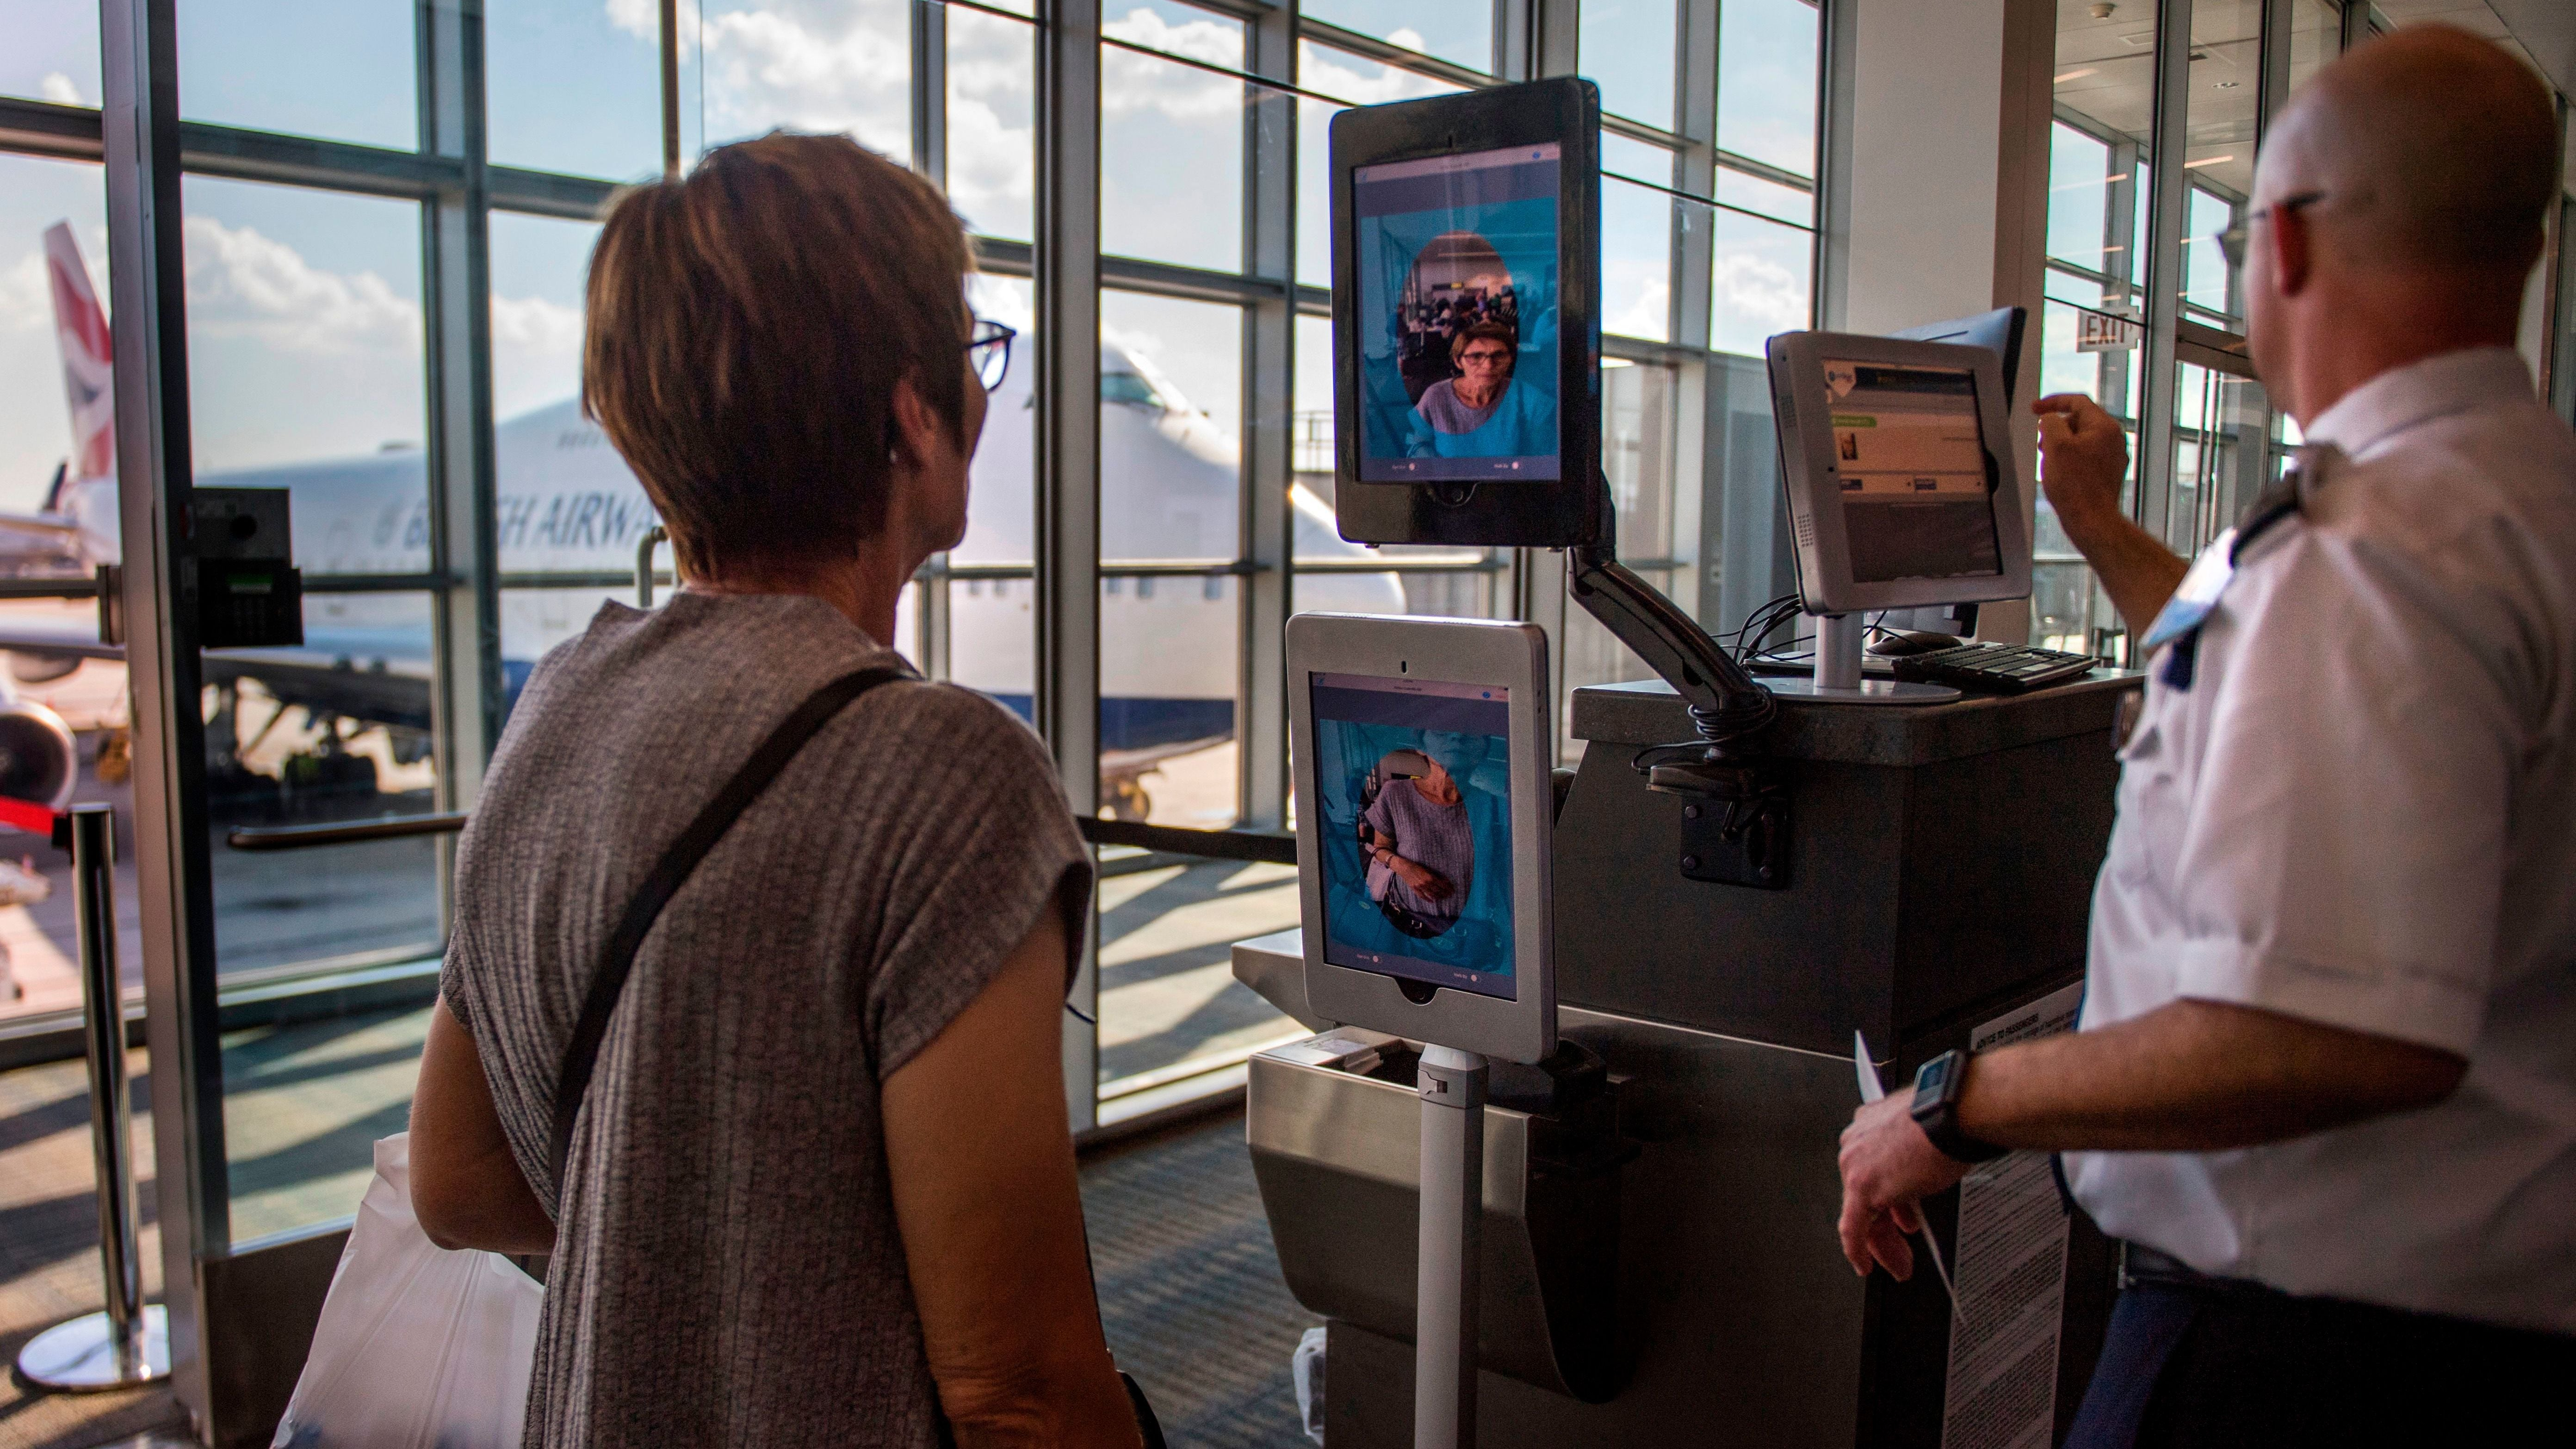 U.S. Aims To Expand Facial Recognition At Border To Include Citizens